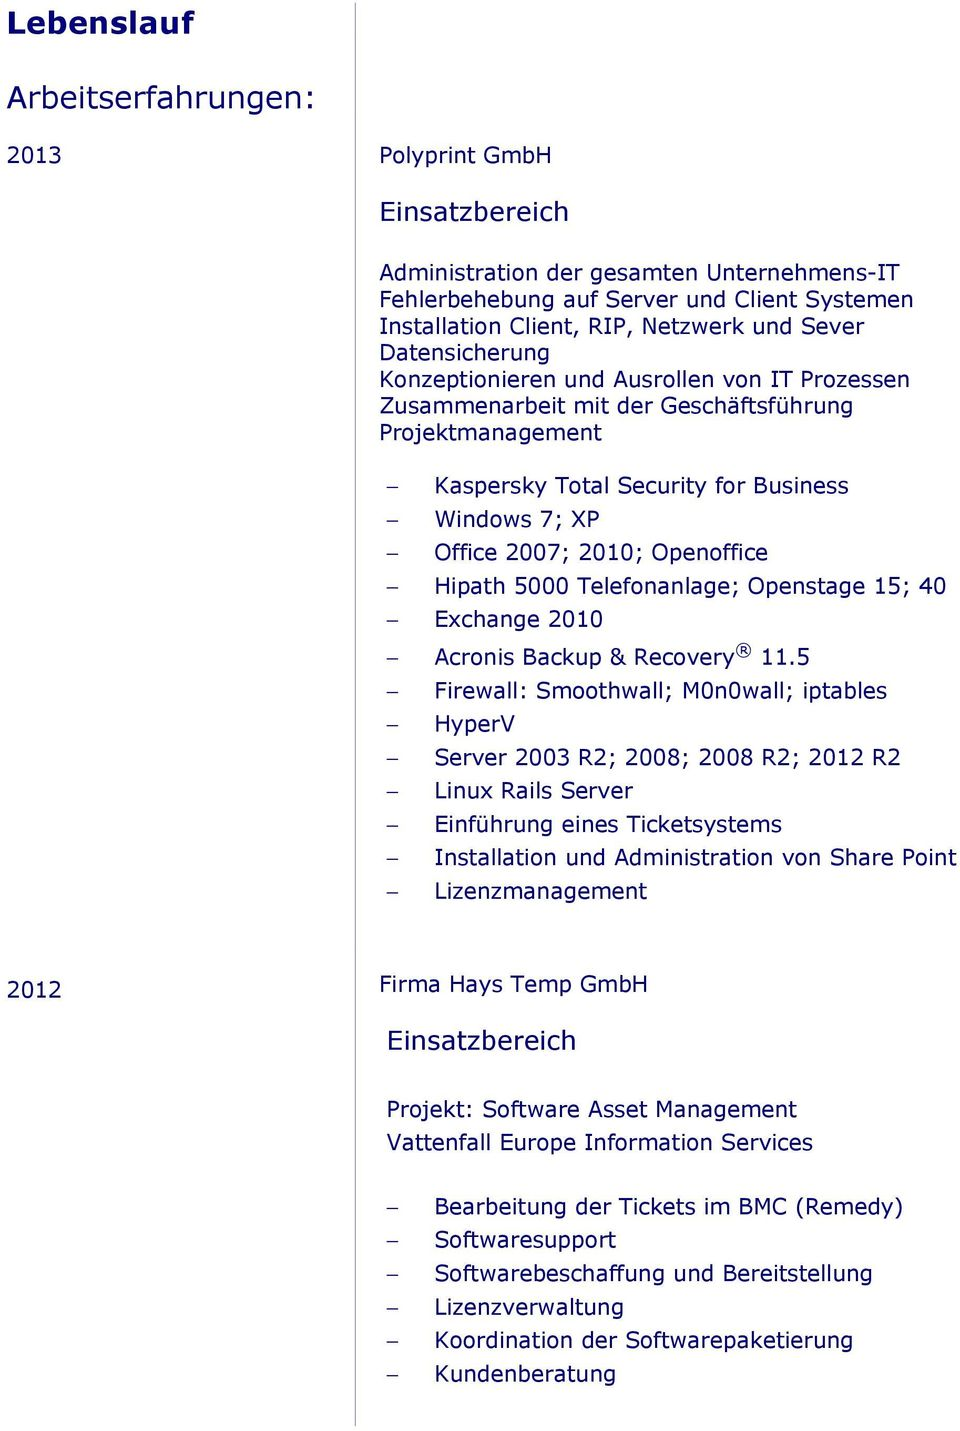 Openoffice Hipath 5000 Telefonanlage; Openstage 15; 40 Exchange 2010 Acronis Backup & Recovery 11.